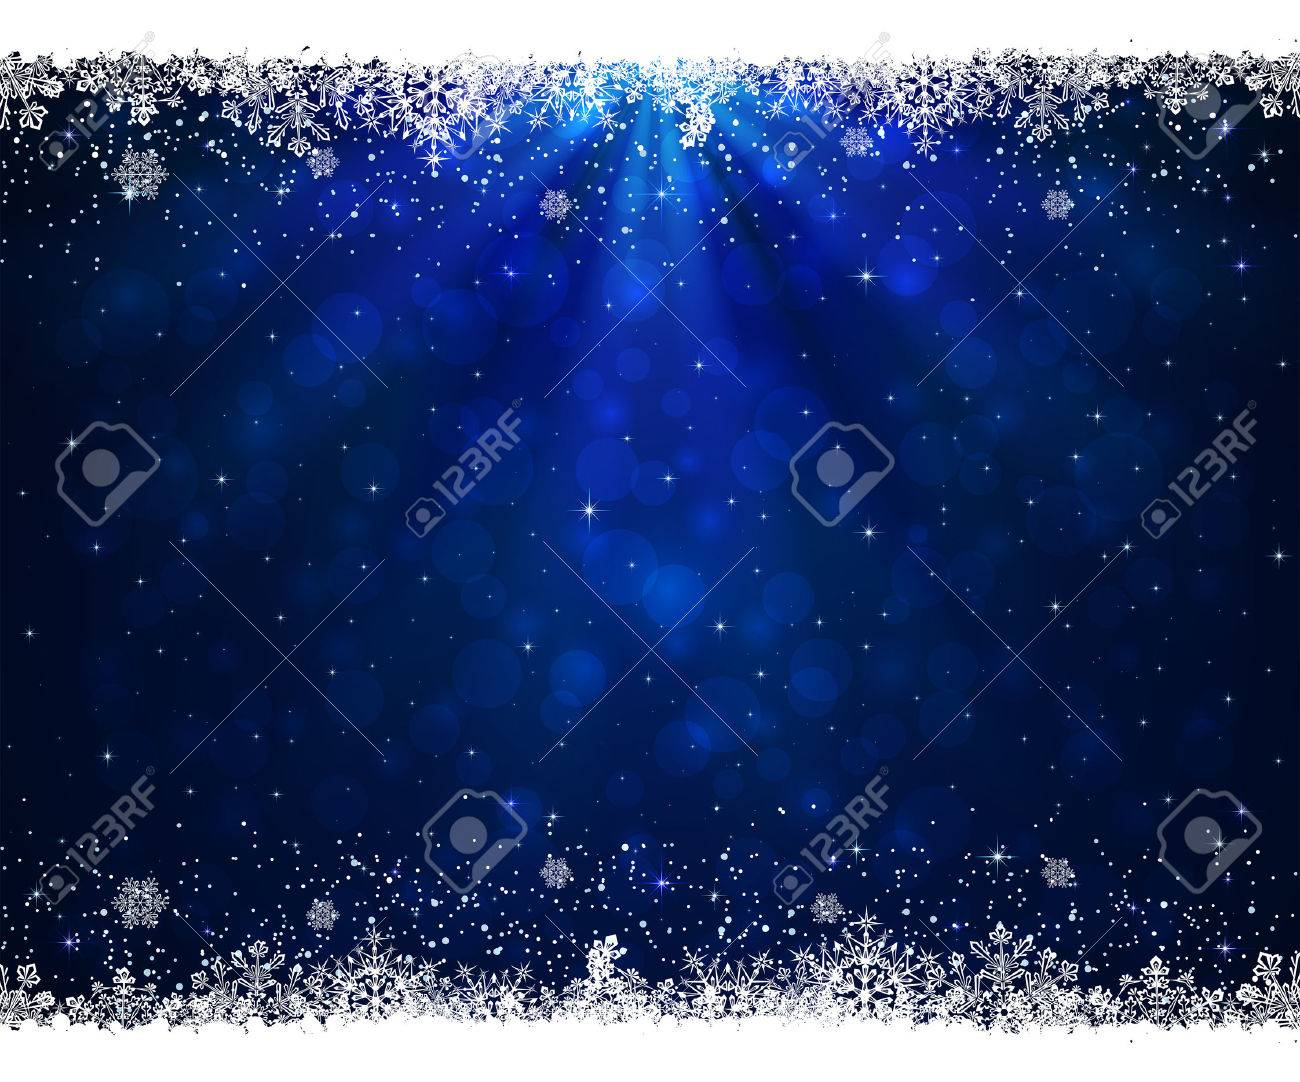 Abstract blue background with frame from snowflakes, illustration. - 49462289